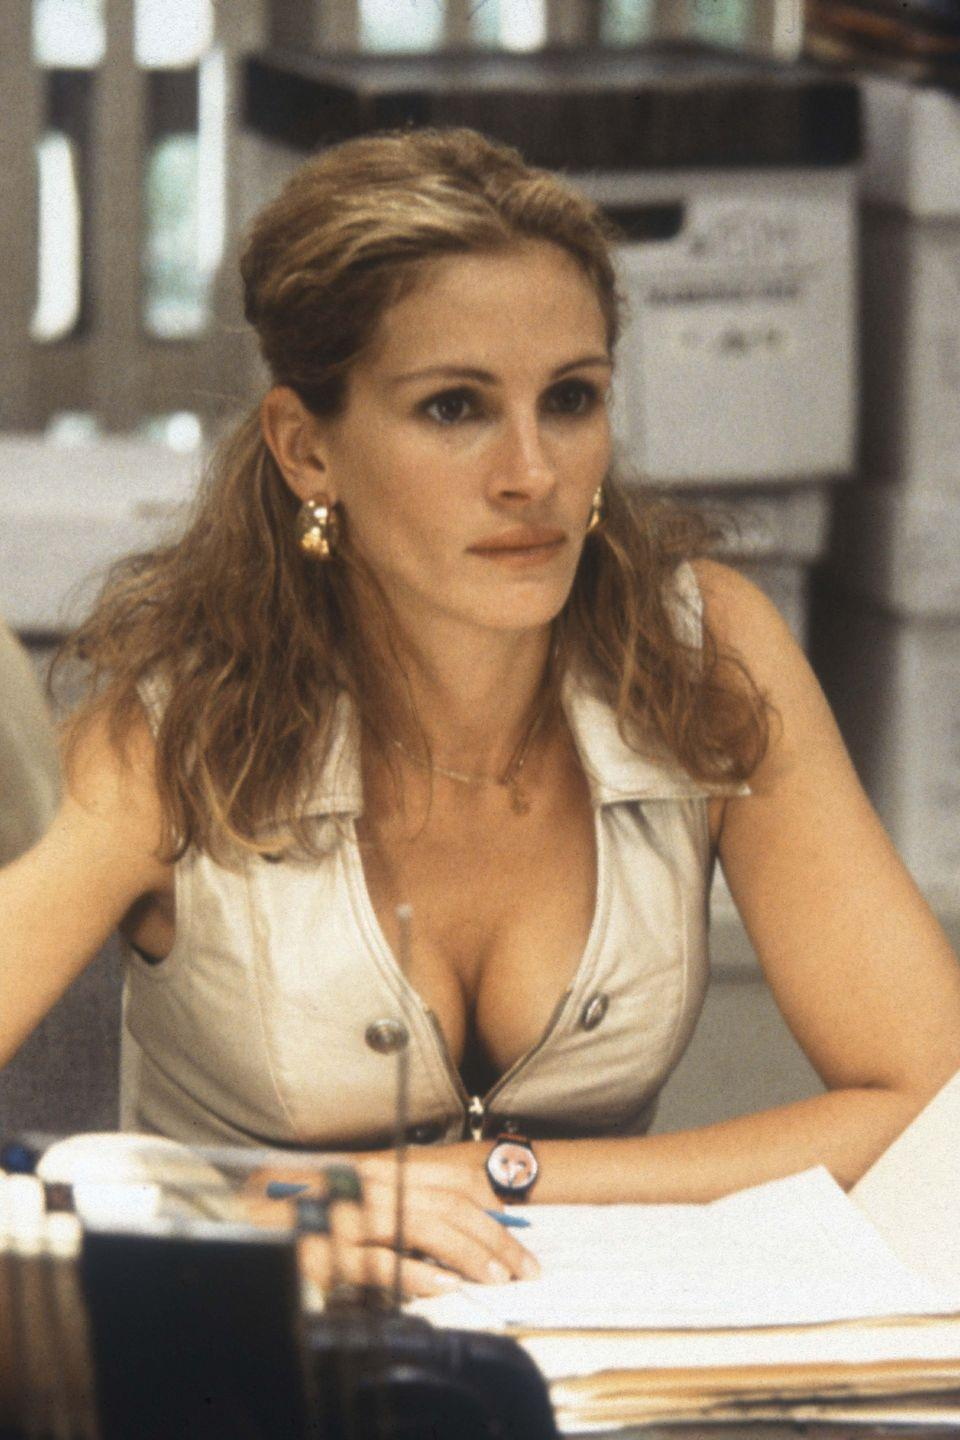 <p>Famed for her no-nonsense attitude, something which was definitely reflected in her wardrobe, Julia Roberts' portrayal of legal assistant Erin Brokovich is a great reference point.</p>